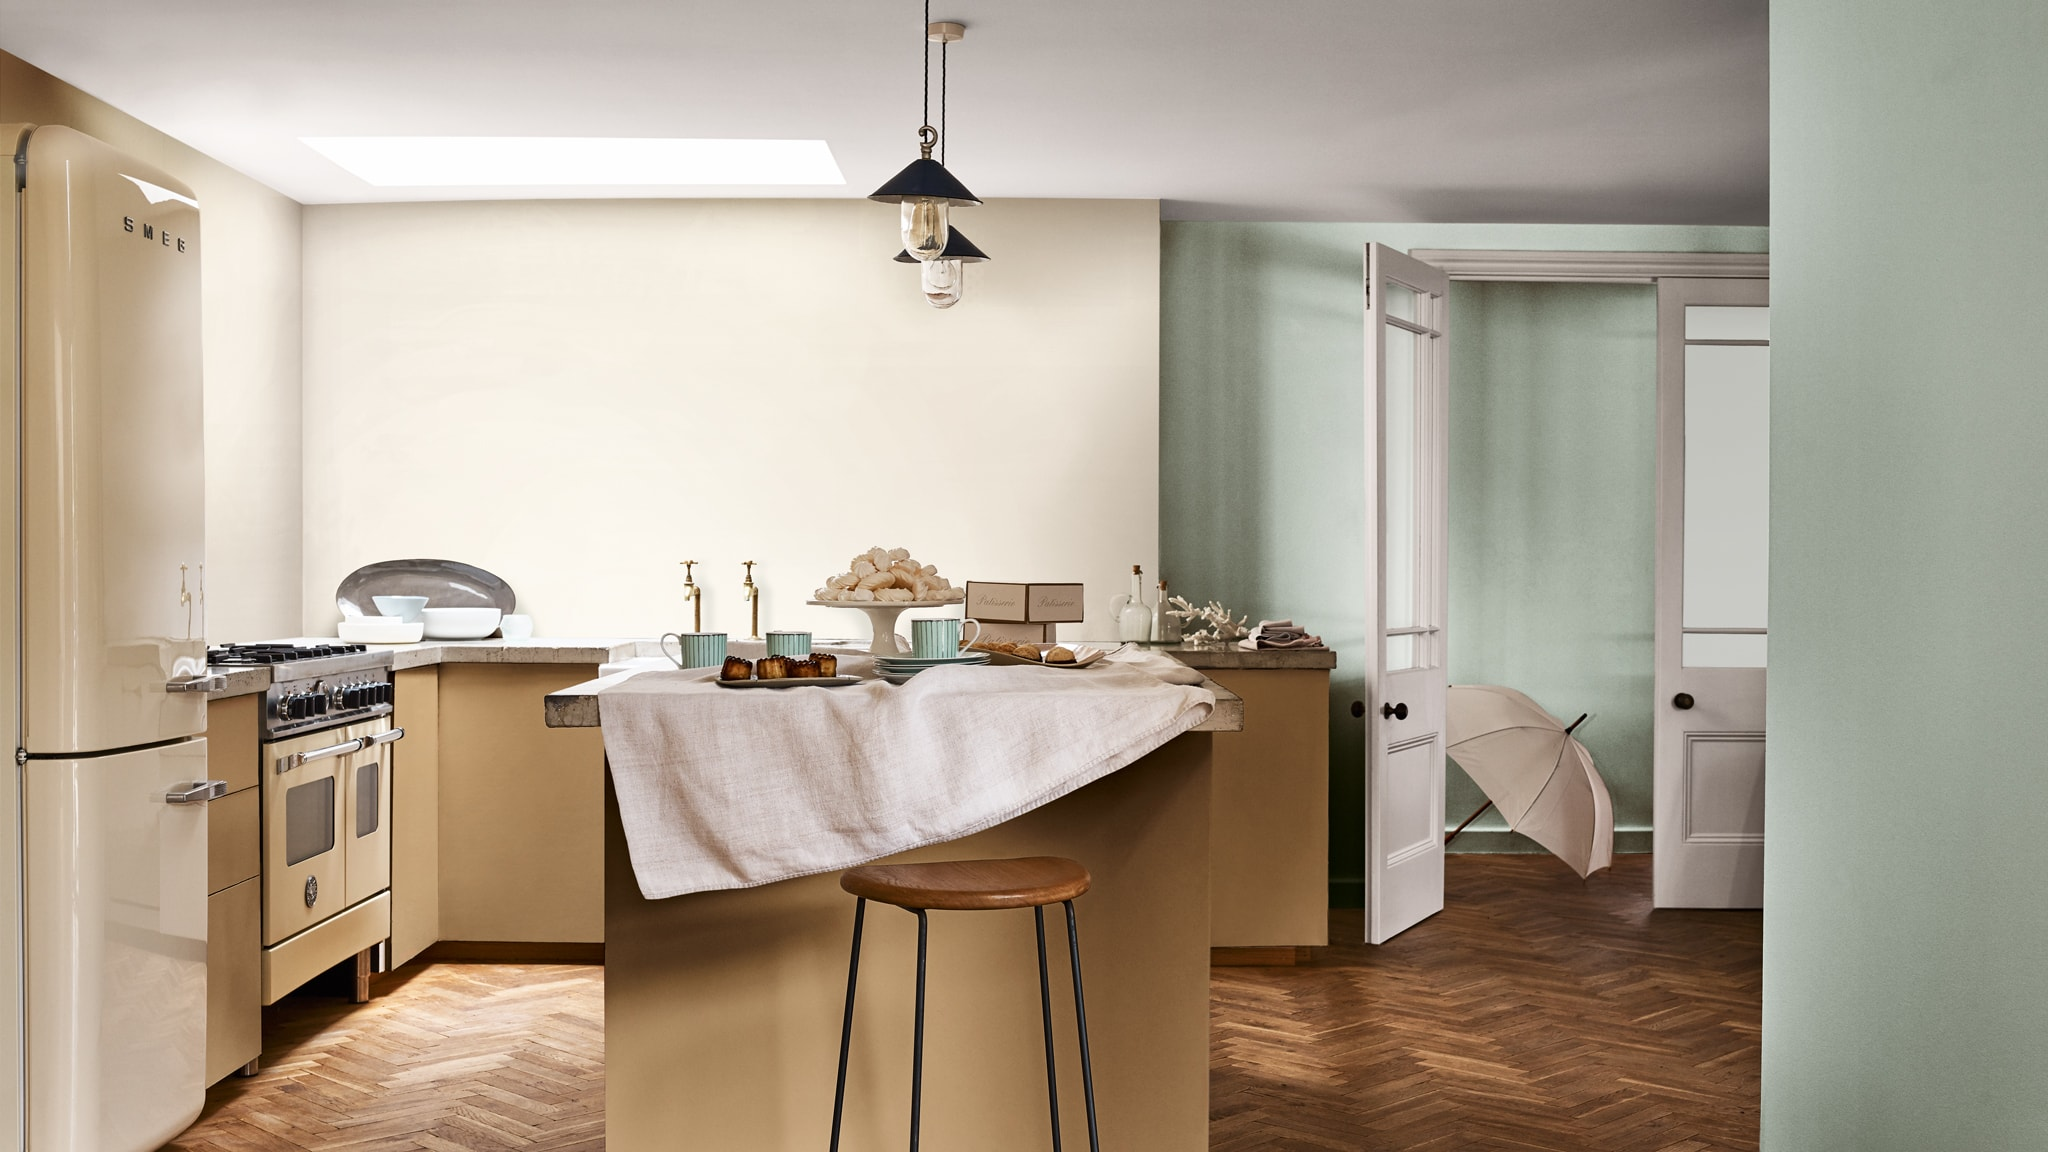 Deco-Paints-Colour-Futures-Colour-of-the-Year-2019-A-place-to-dream-Kitchen-Inspiration-47